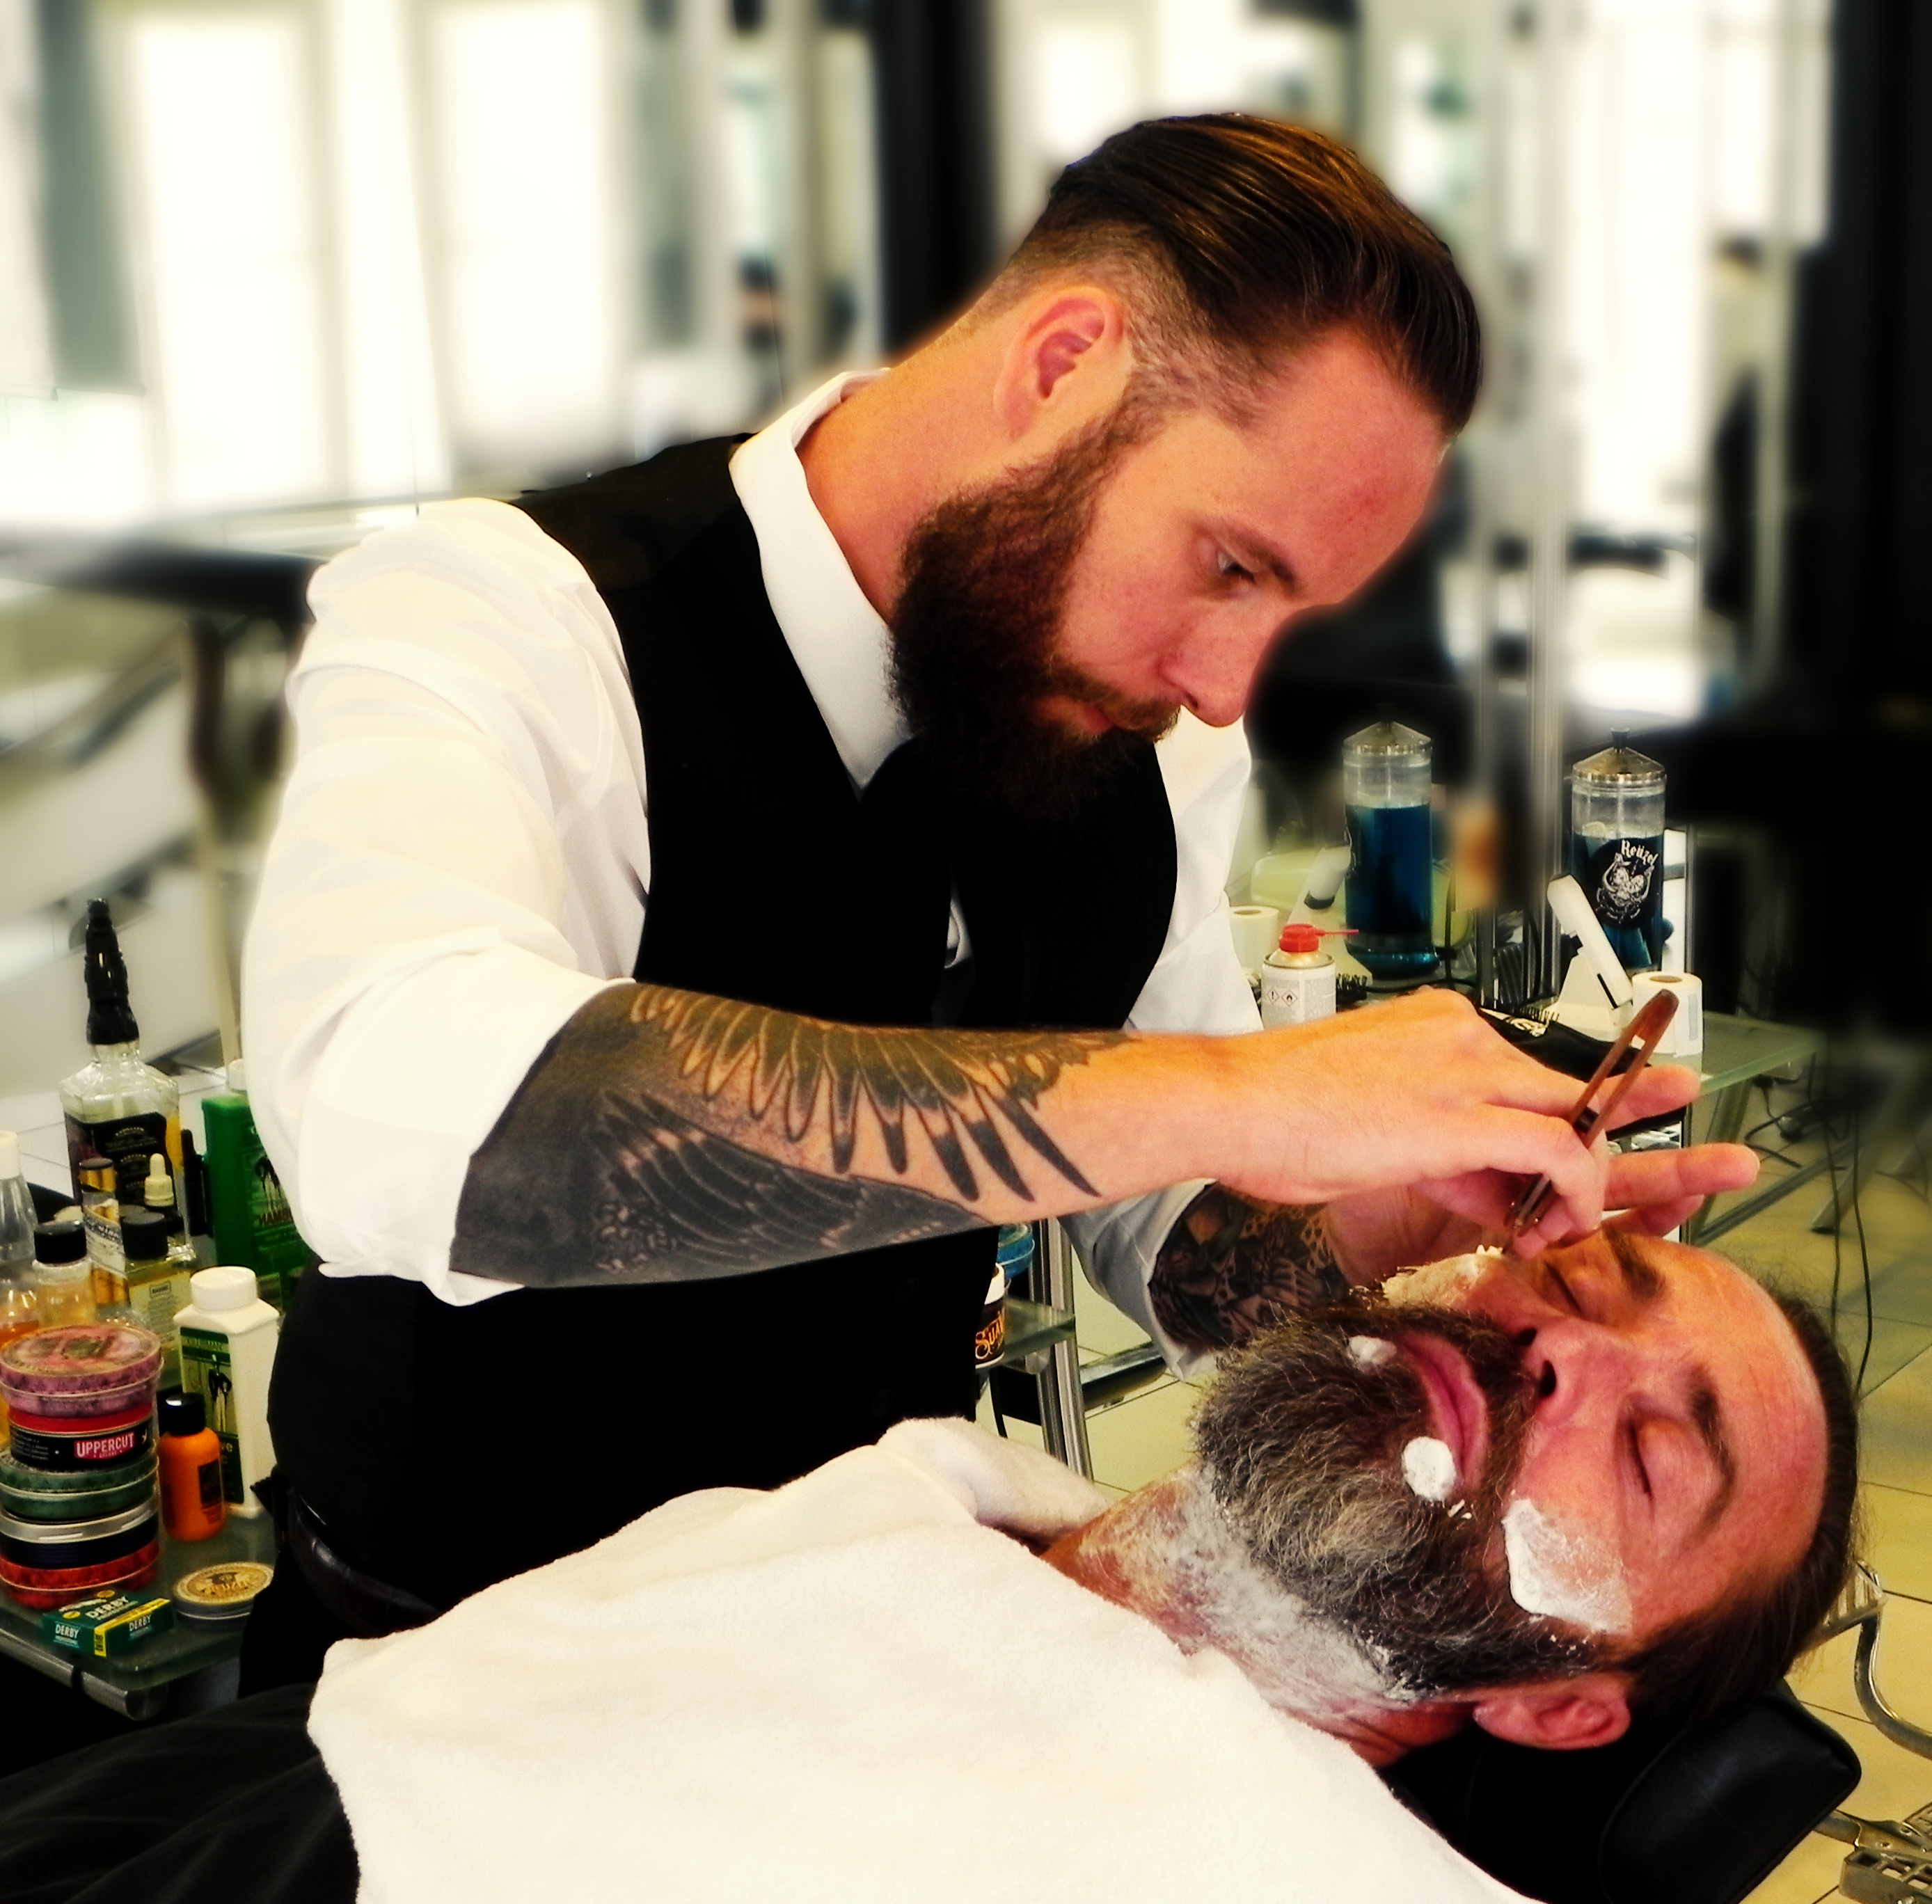 Duke Johns Barbershop beim rasieren